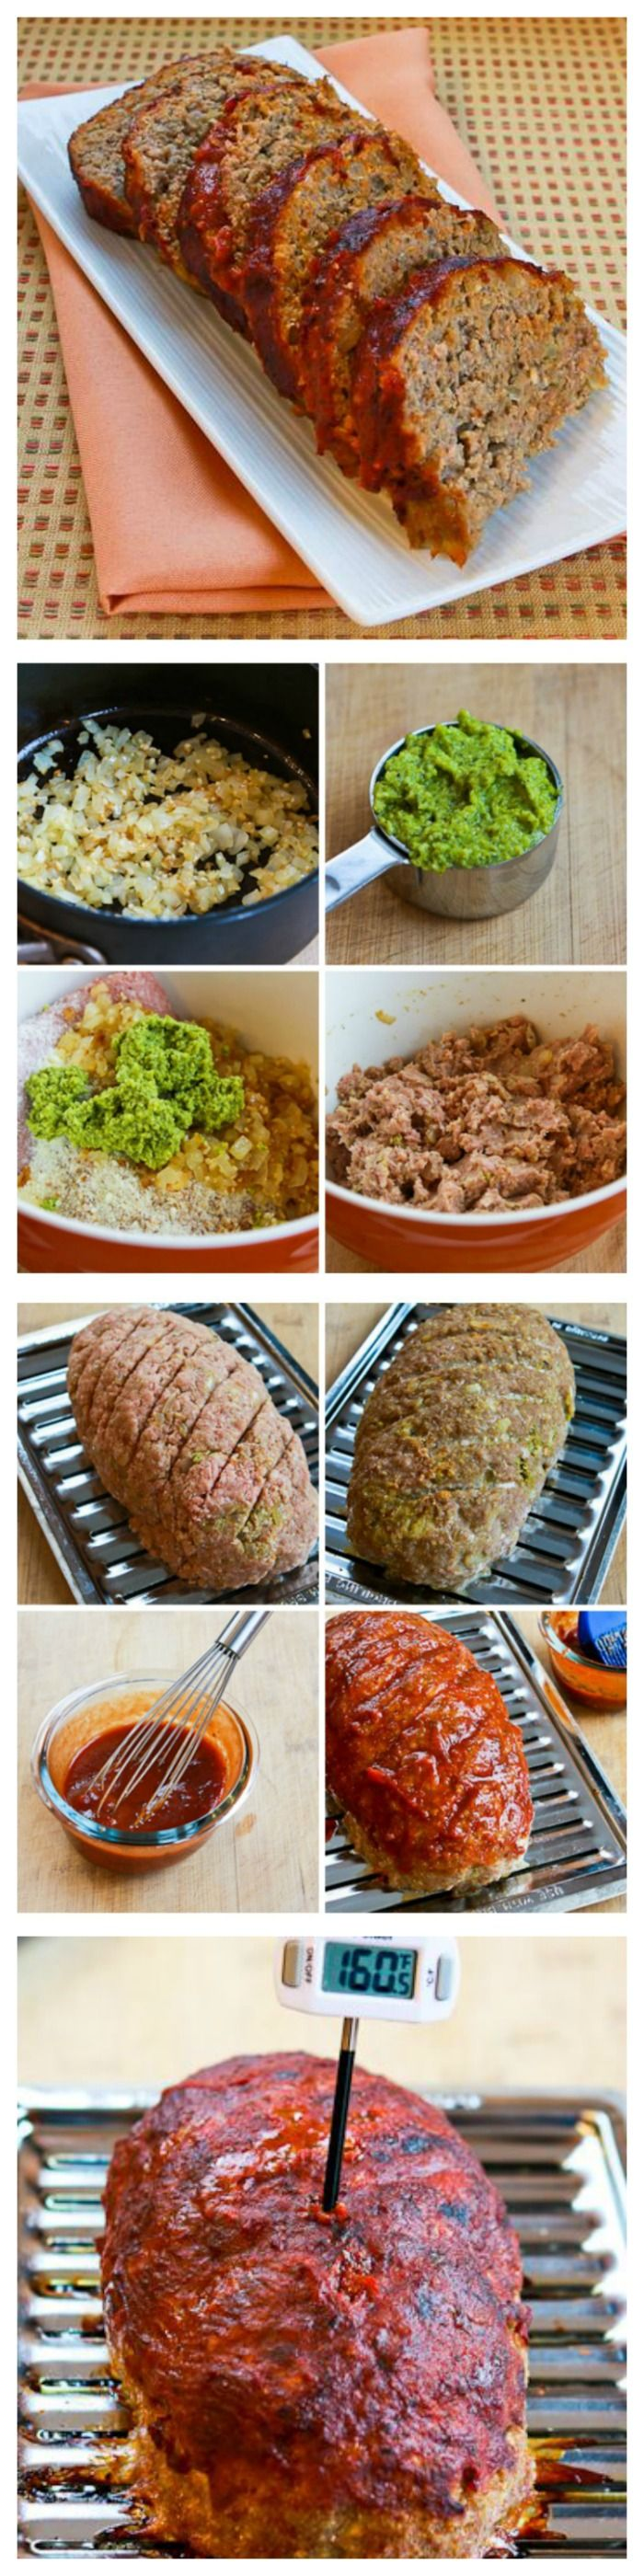 Turkey Pesto Meatloaf with Tomato Sauce. If you like pesto, this ...